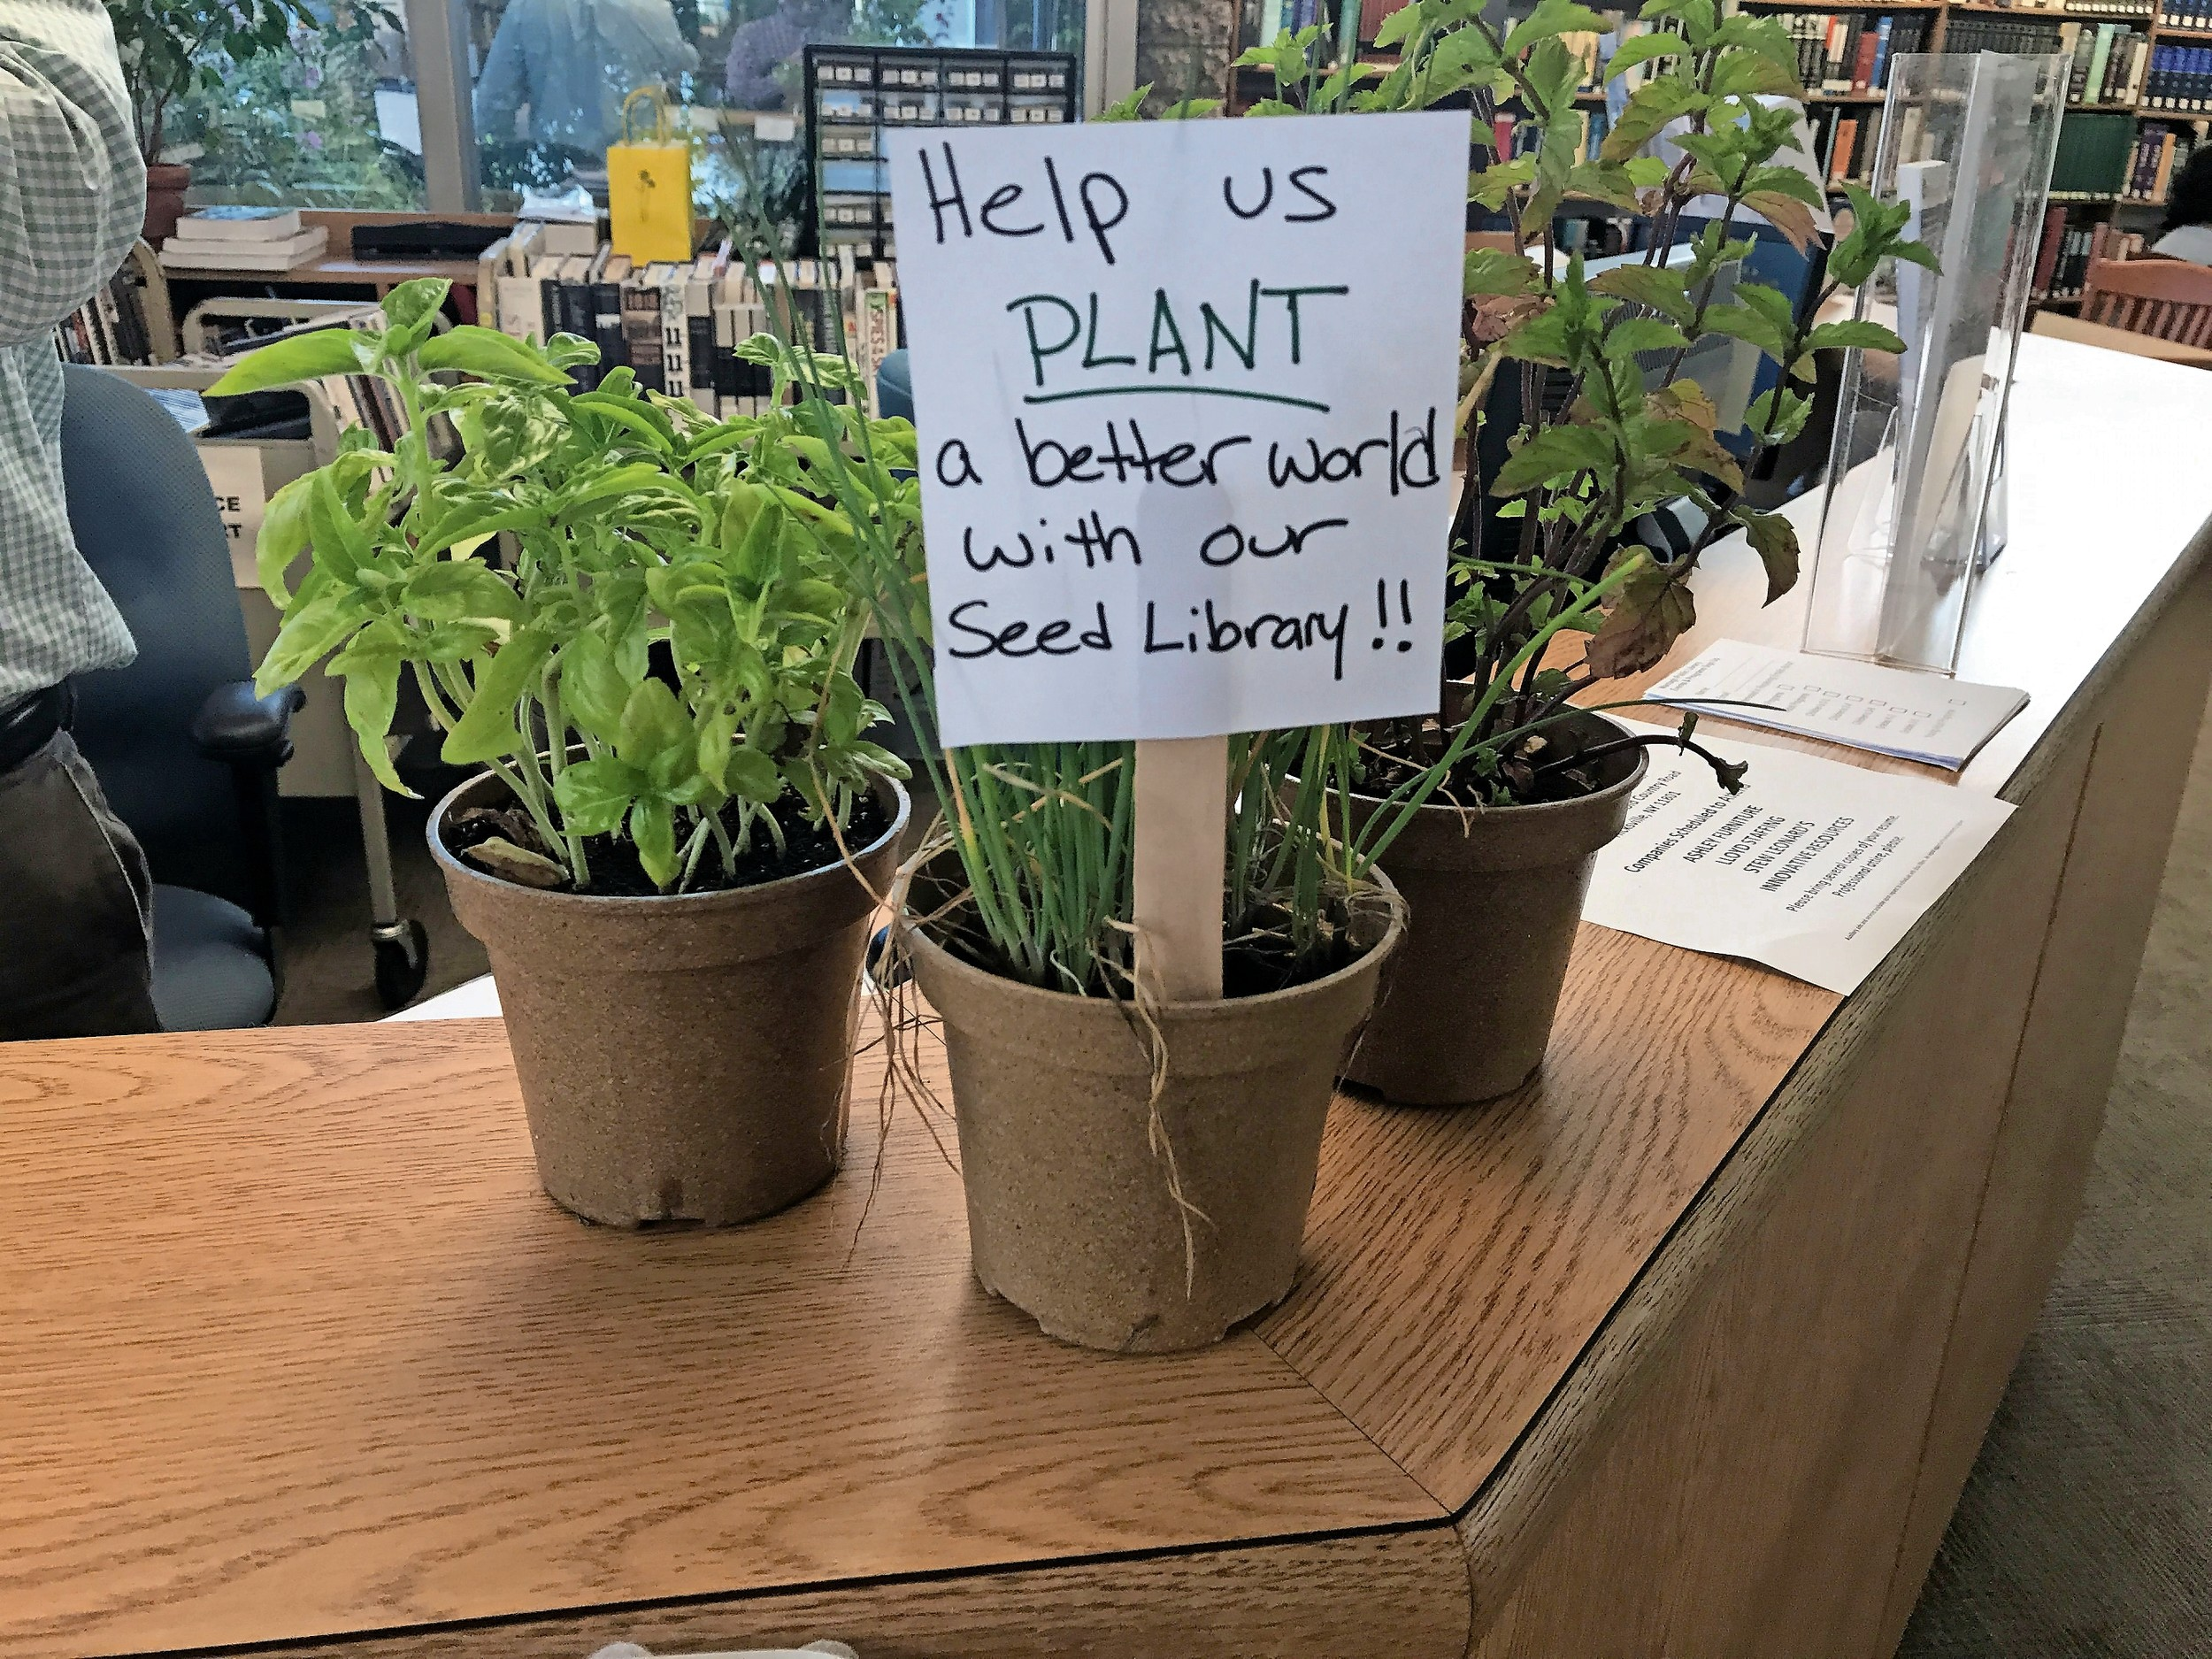 Patrons will be able to grow plants, using seeds from the library, at a new community garden.